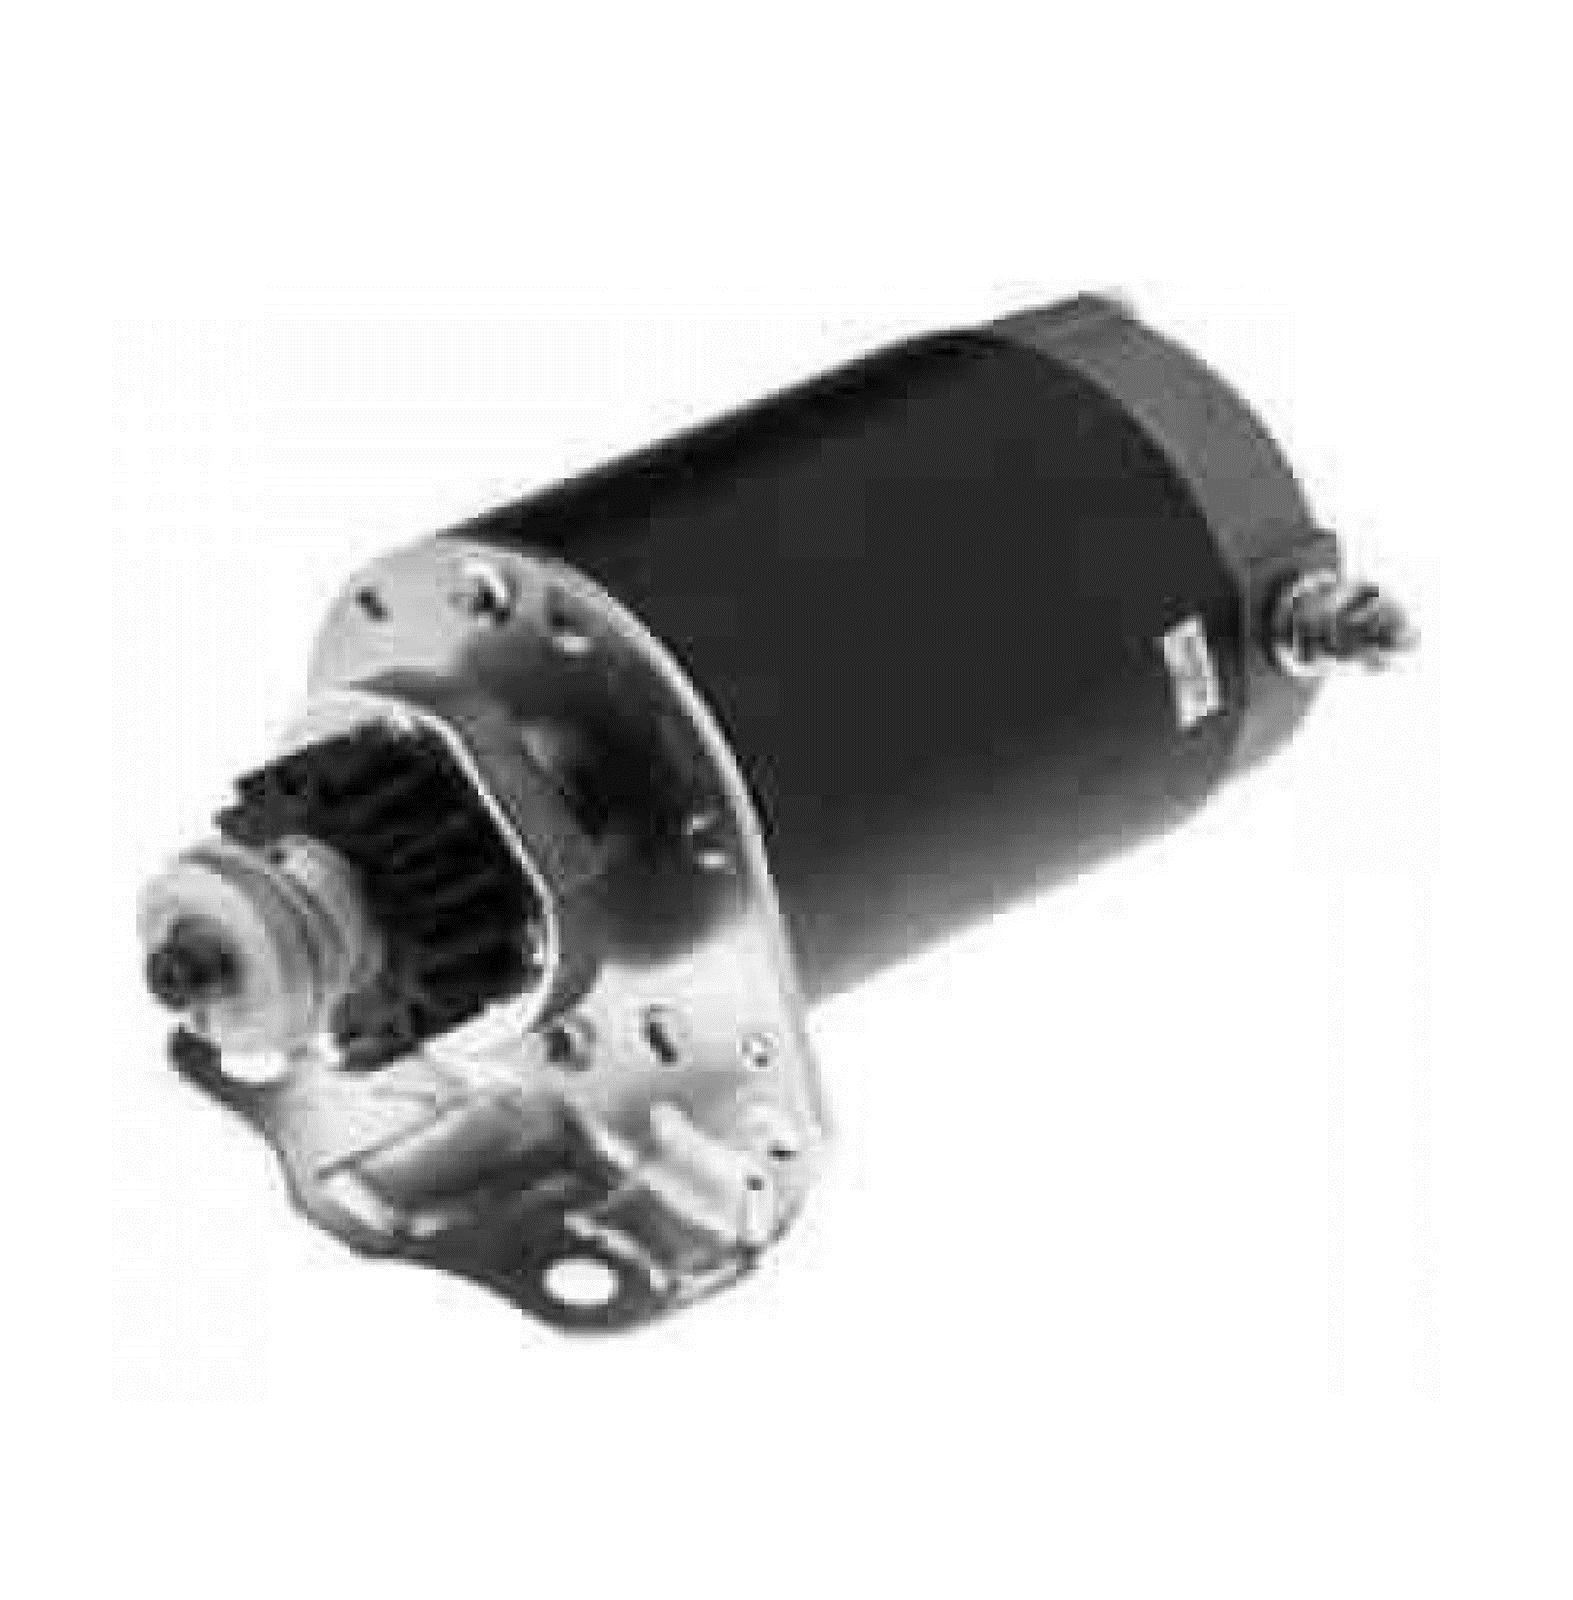 Oregon 33 708 Electric Starter Motor Briggs And Stratton